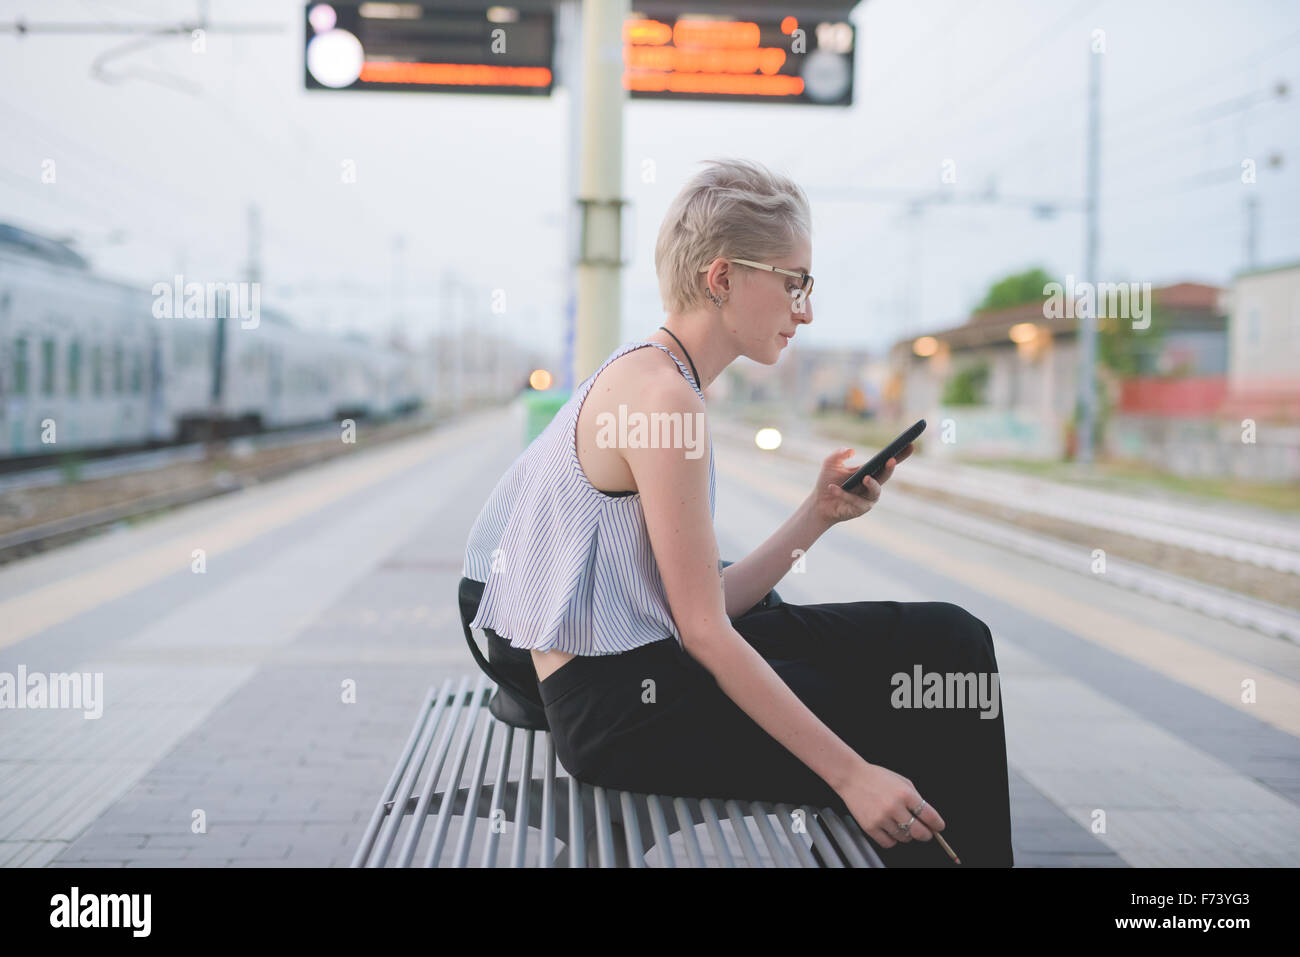 young handsome caucasian blonde italian designer sitting on a bench in railway station, using smartphone and smoking, - Stock Image